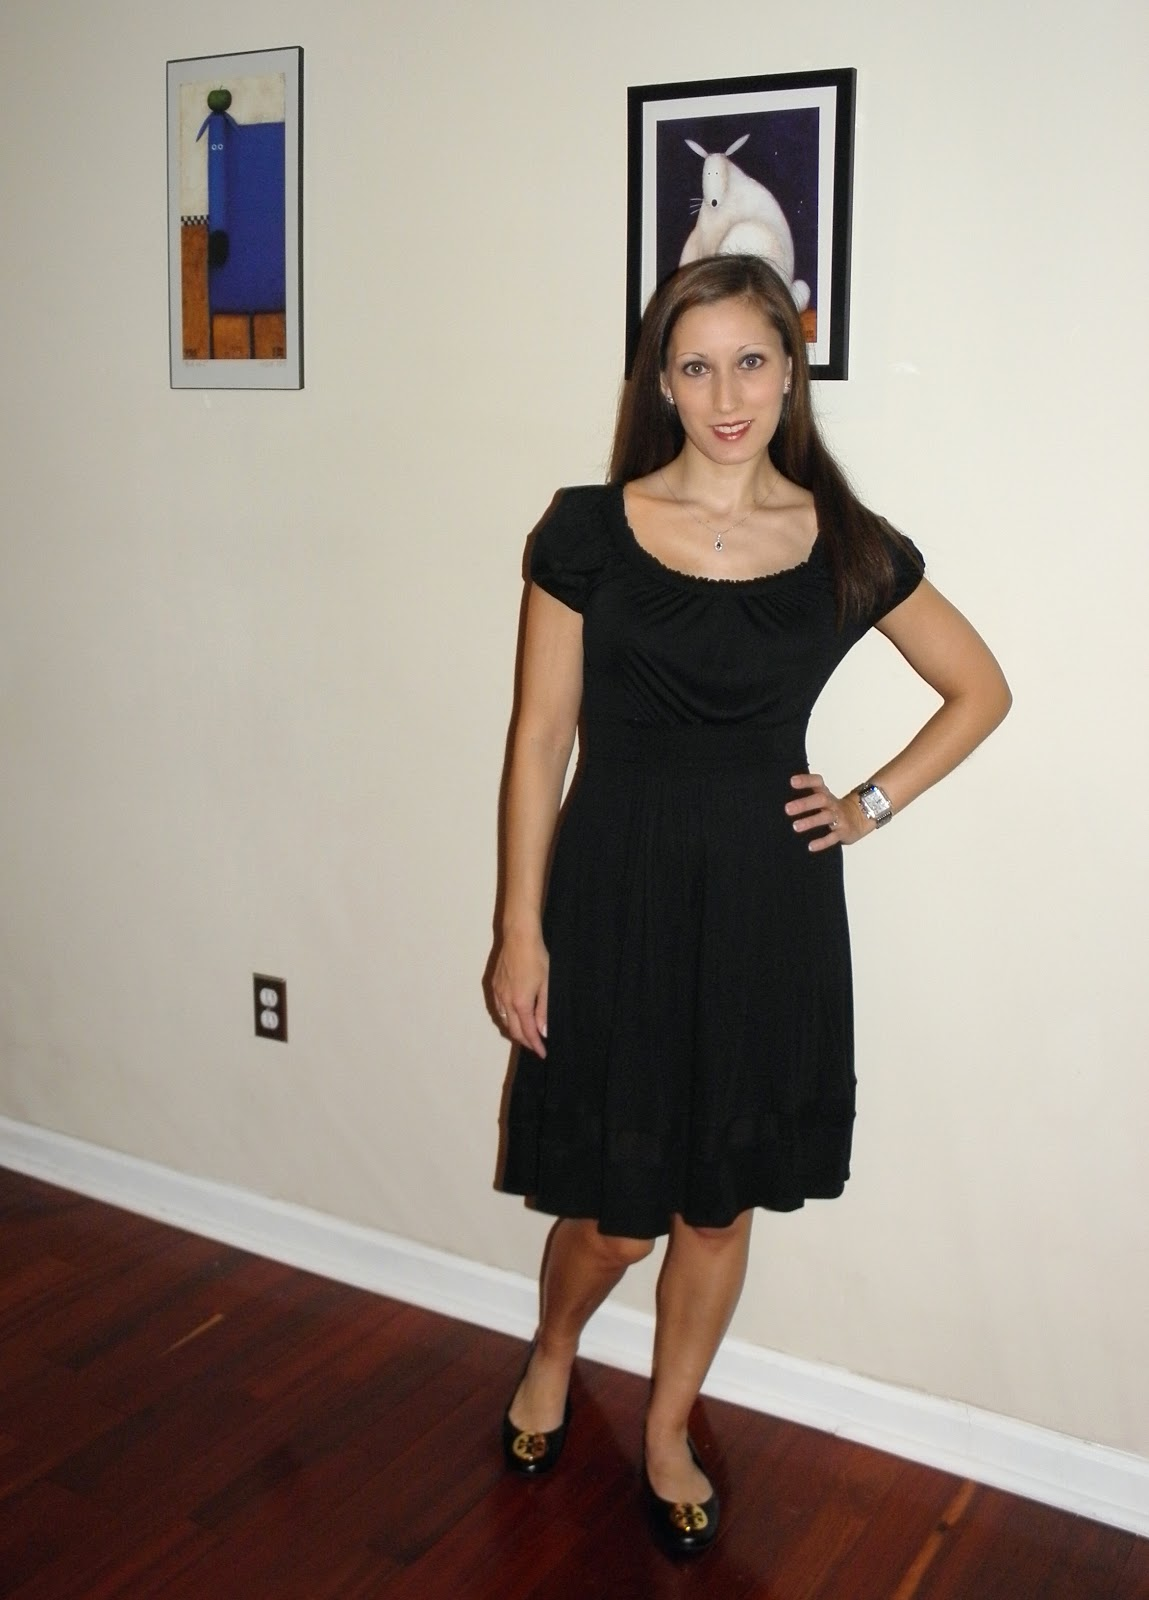 The dress is from BCBGMaxAzria and the flats are from Tory Burch. It really  was hard to smile for today's photo.